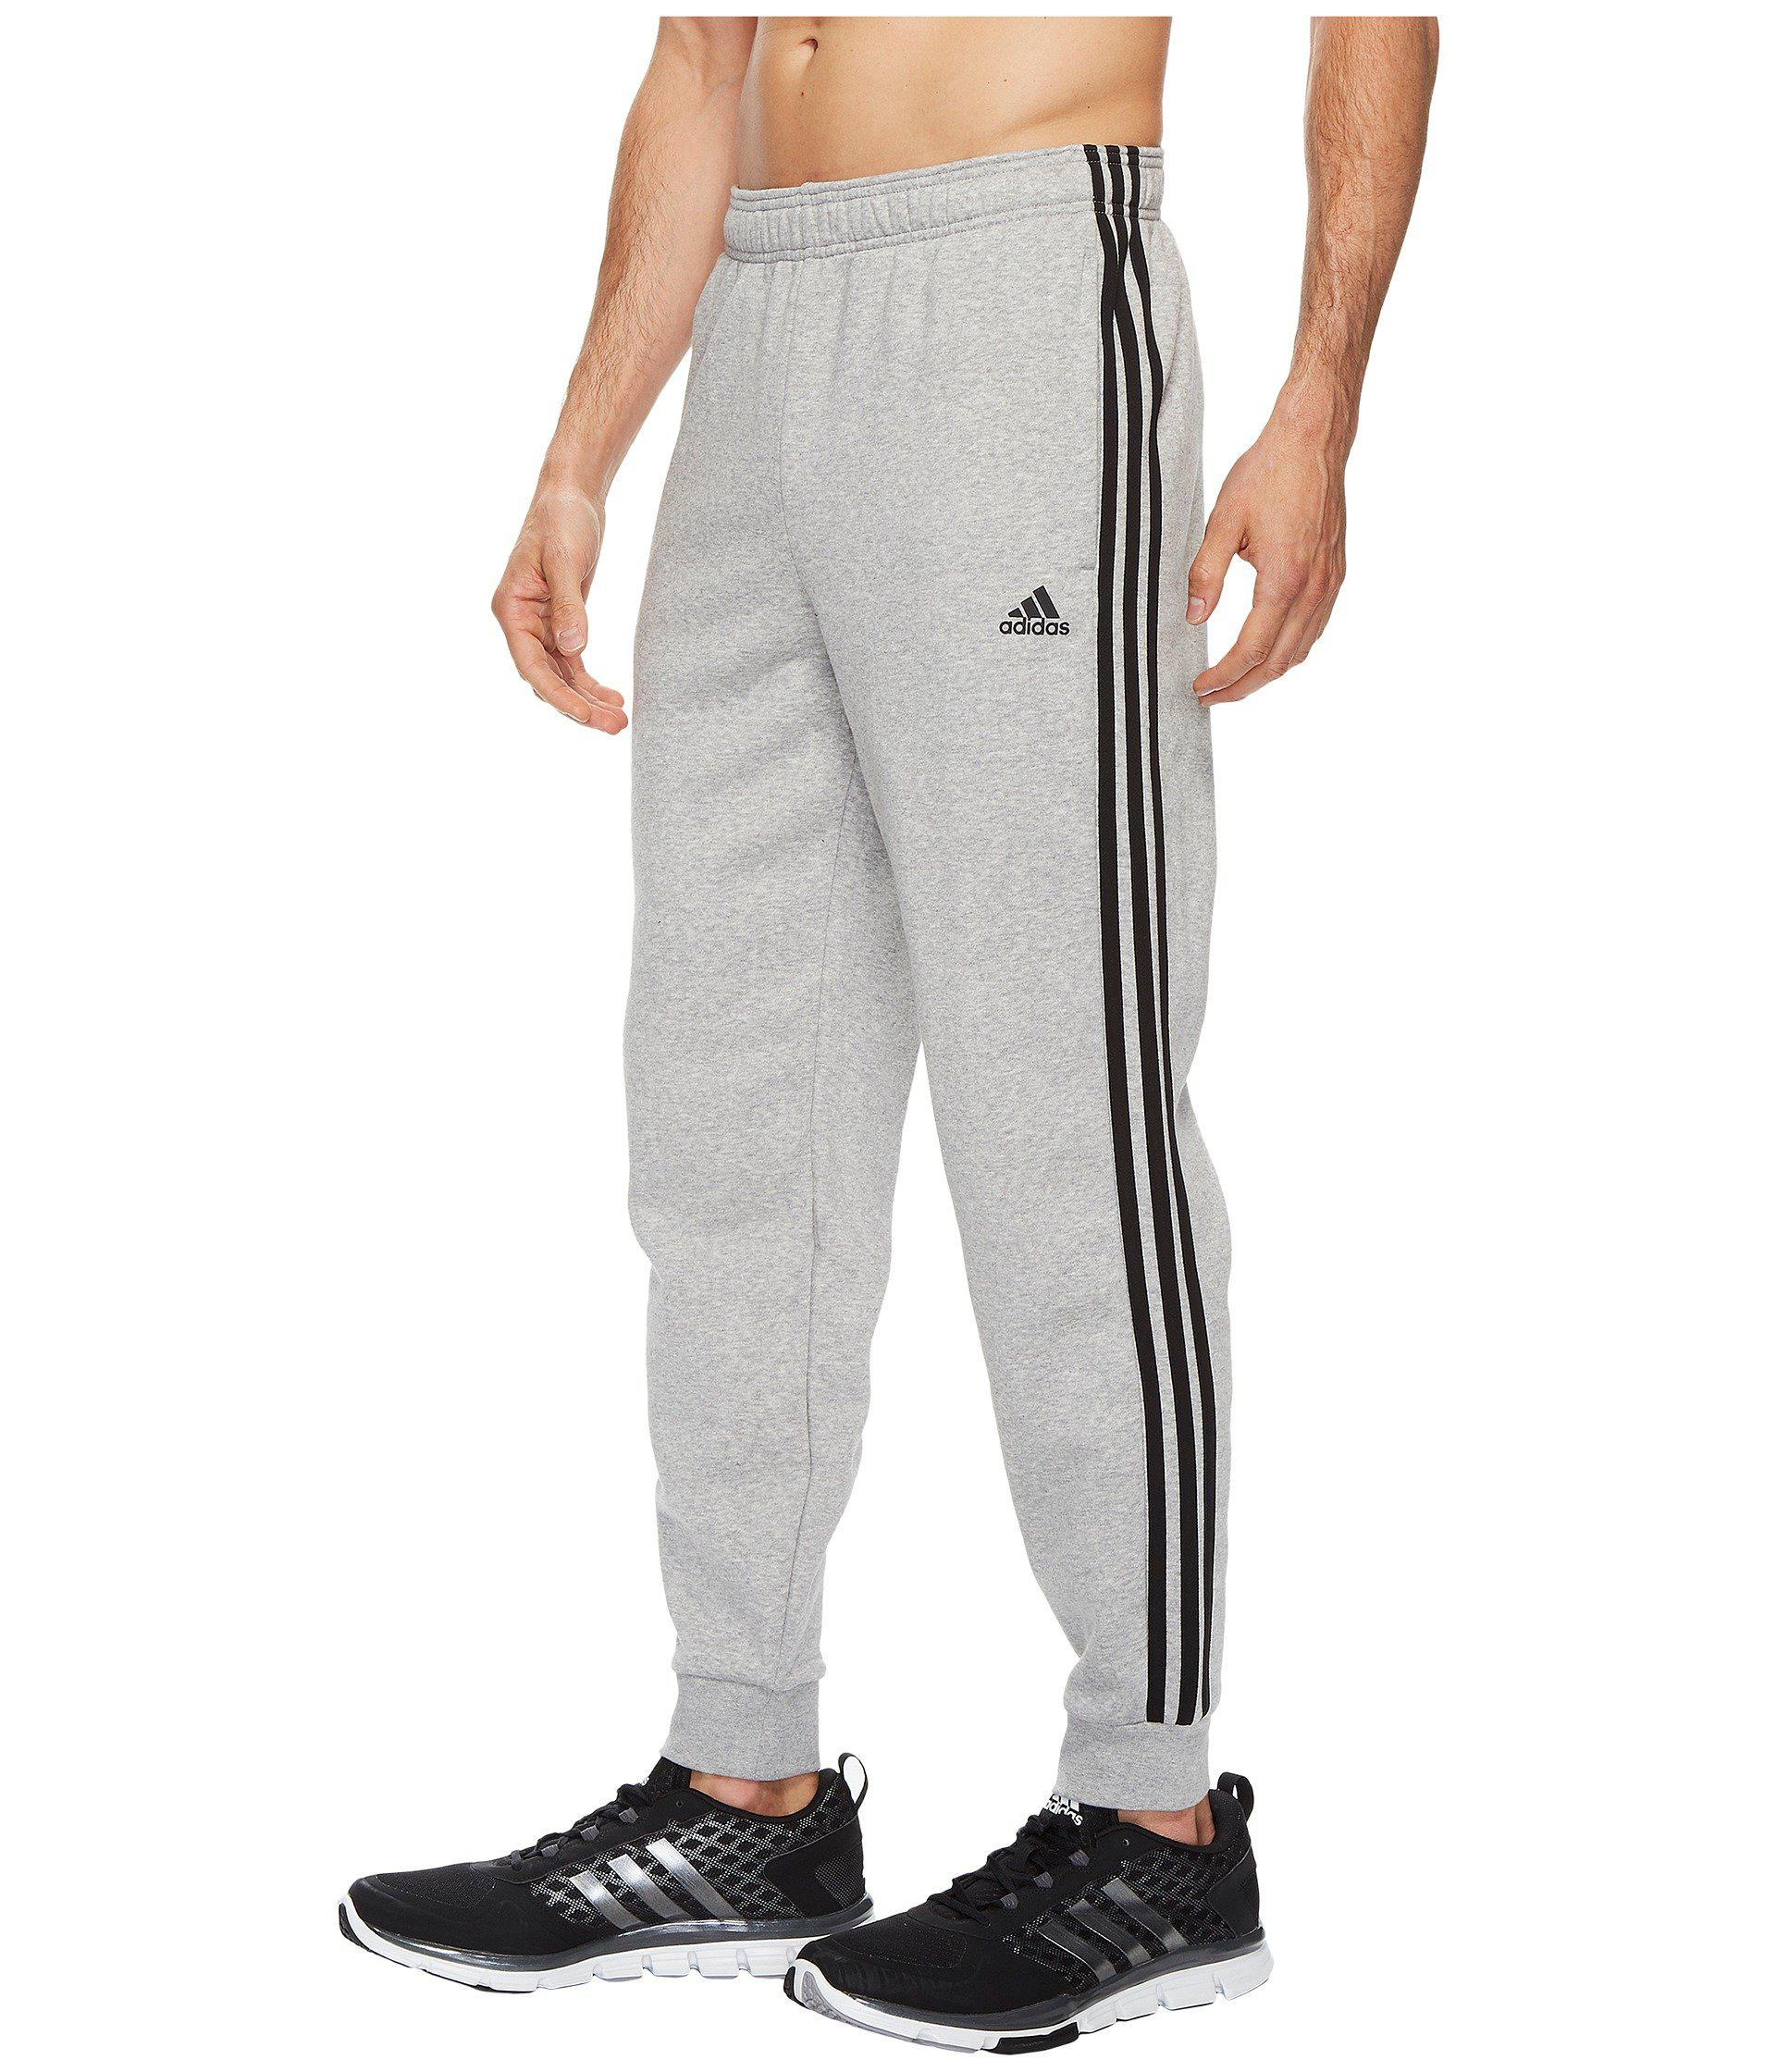 34301574a050 Adidas - Gray Essentials 3s Tapered   Cuffed Pants for Men - Lyst. View  fullscreen